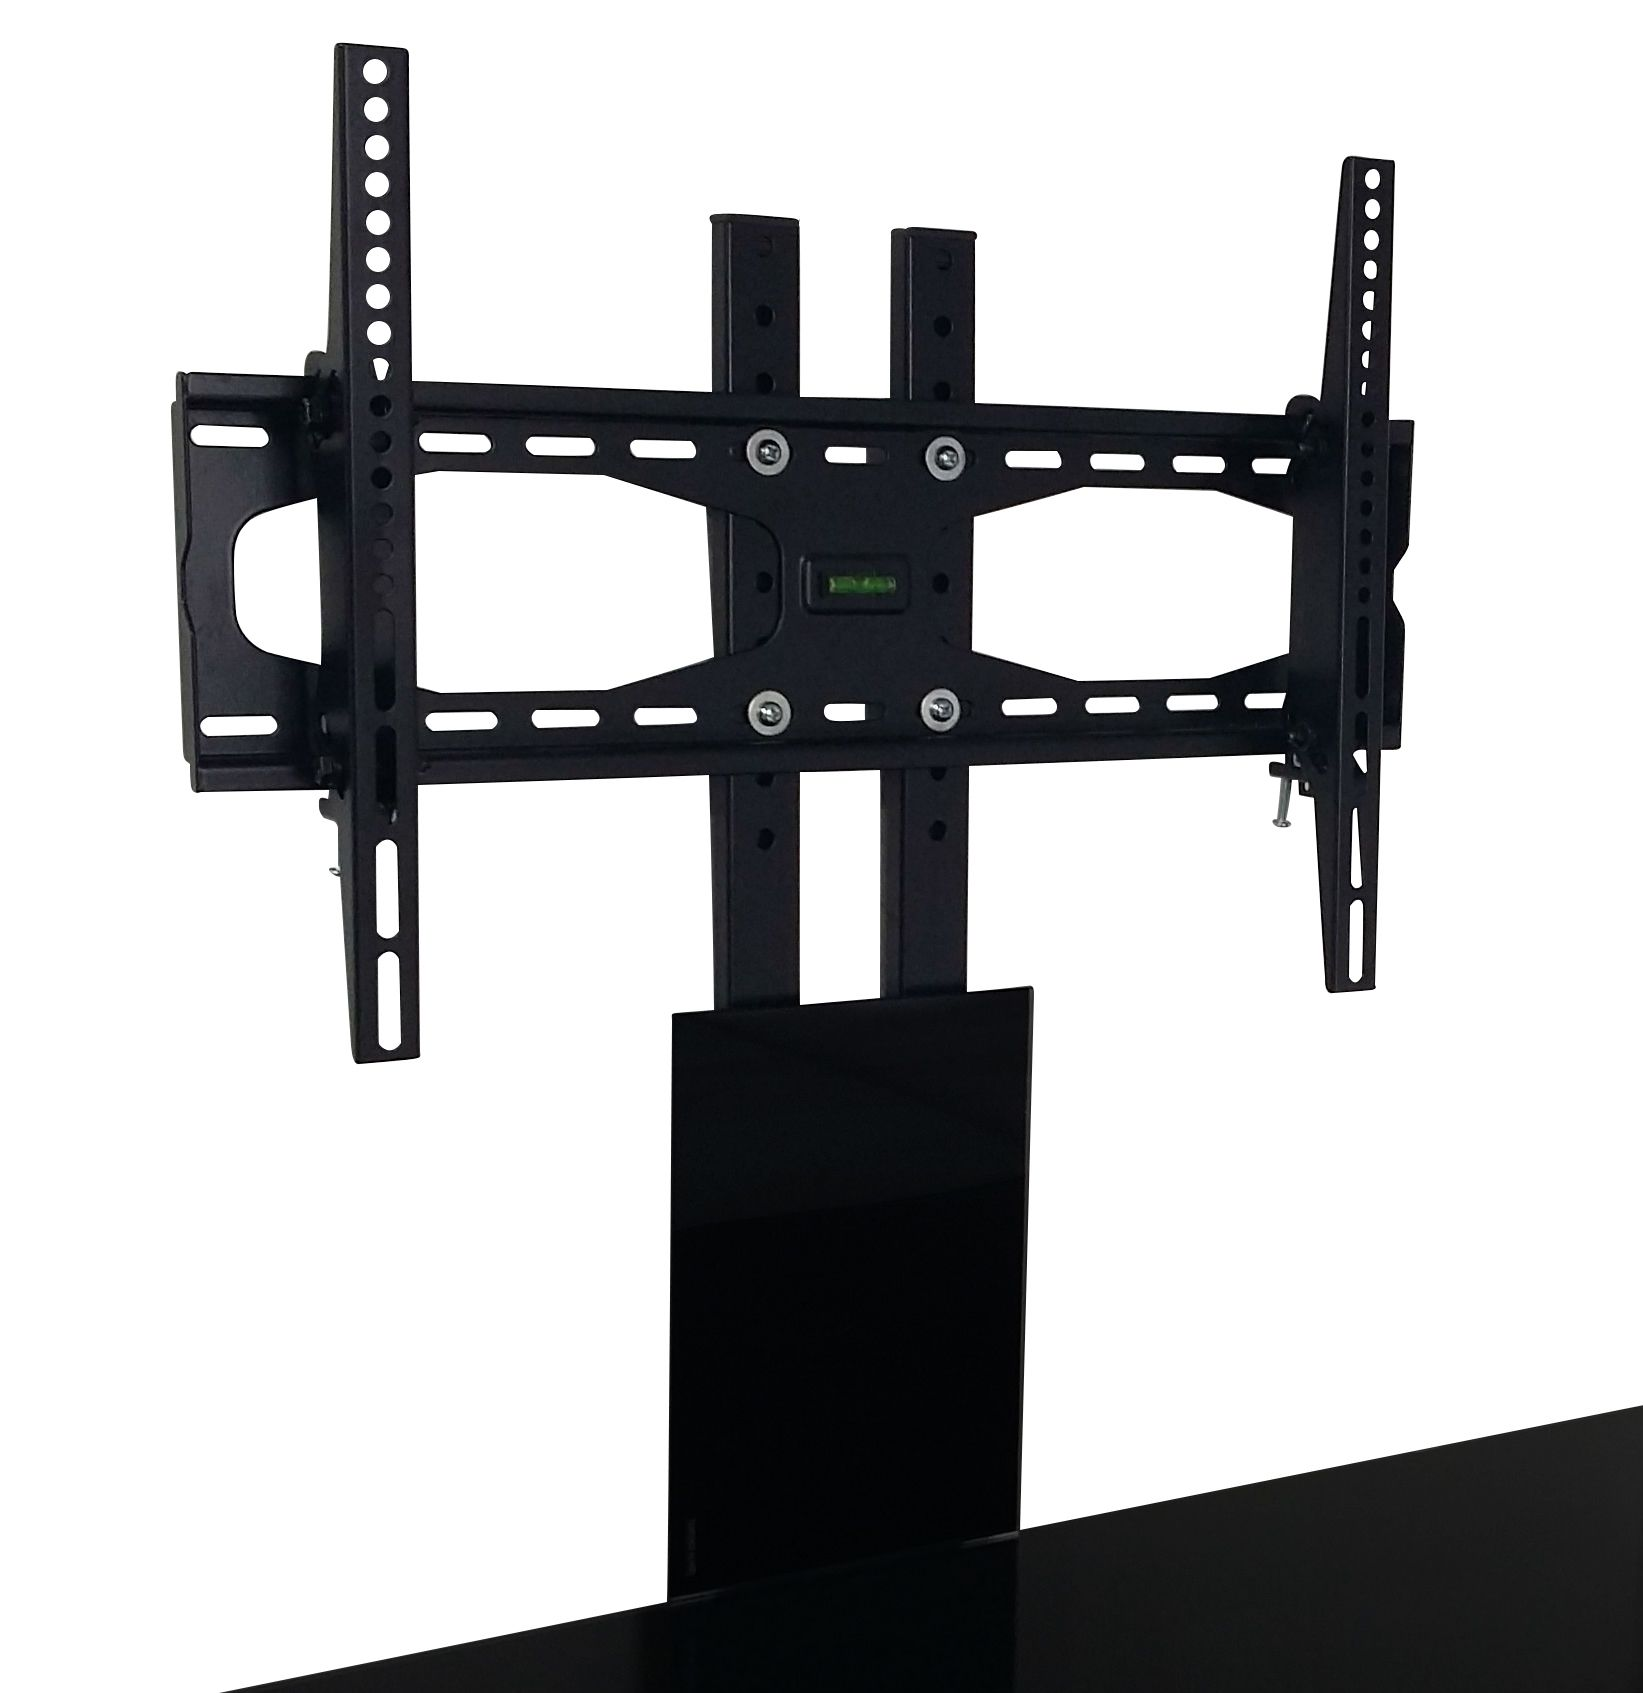 Frank Olsen Black TV BRACKET accessory Black